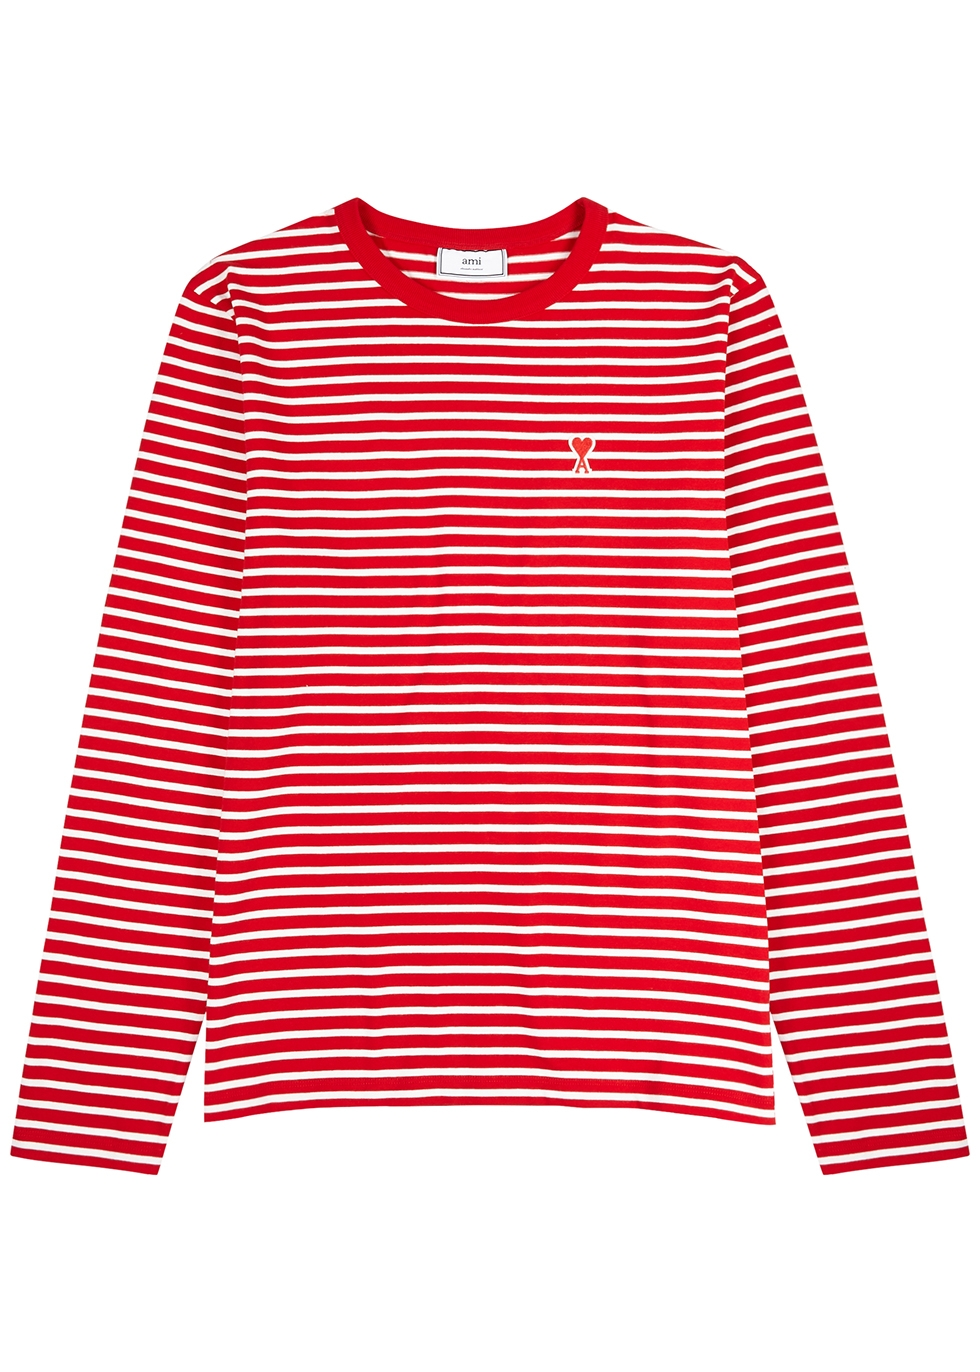 Red striped cotton top